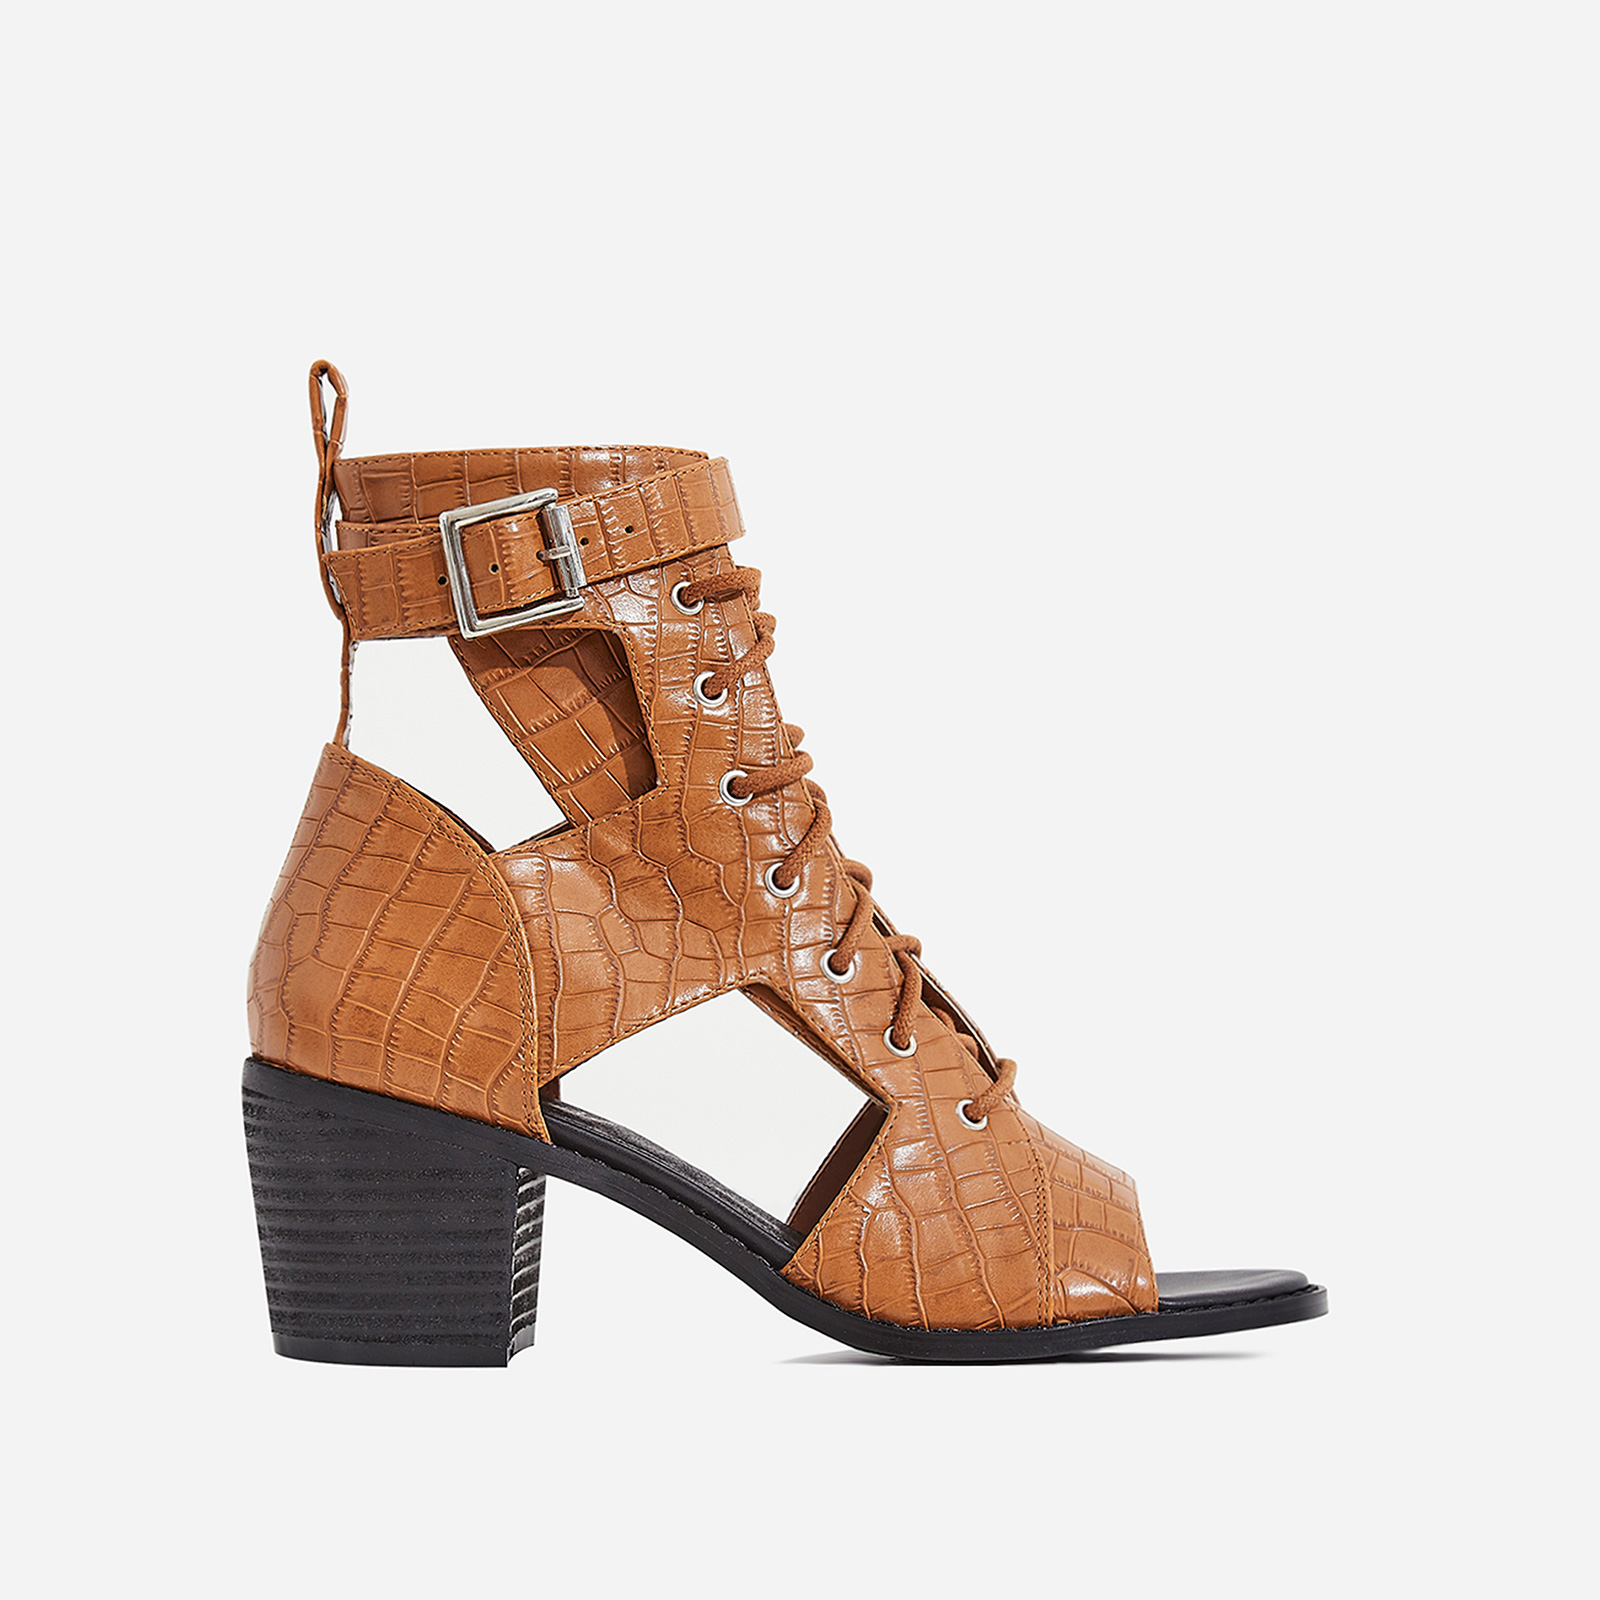 Maria Cut Out Lace Up Ankle Western Boot In Tan Croc Print Faux Leather